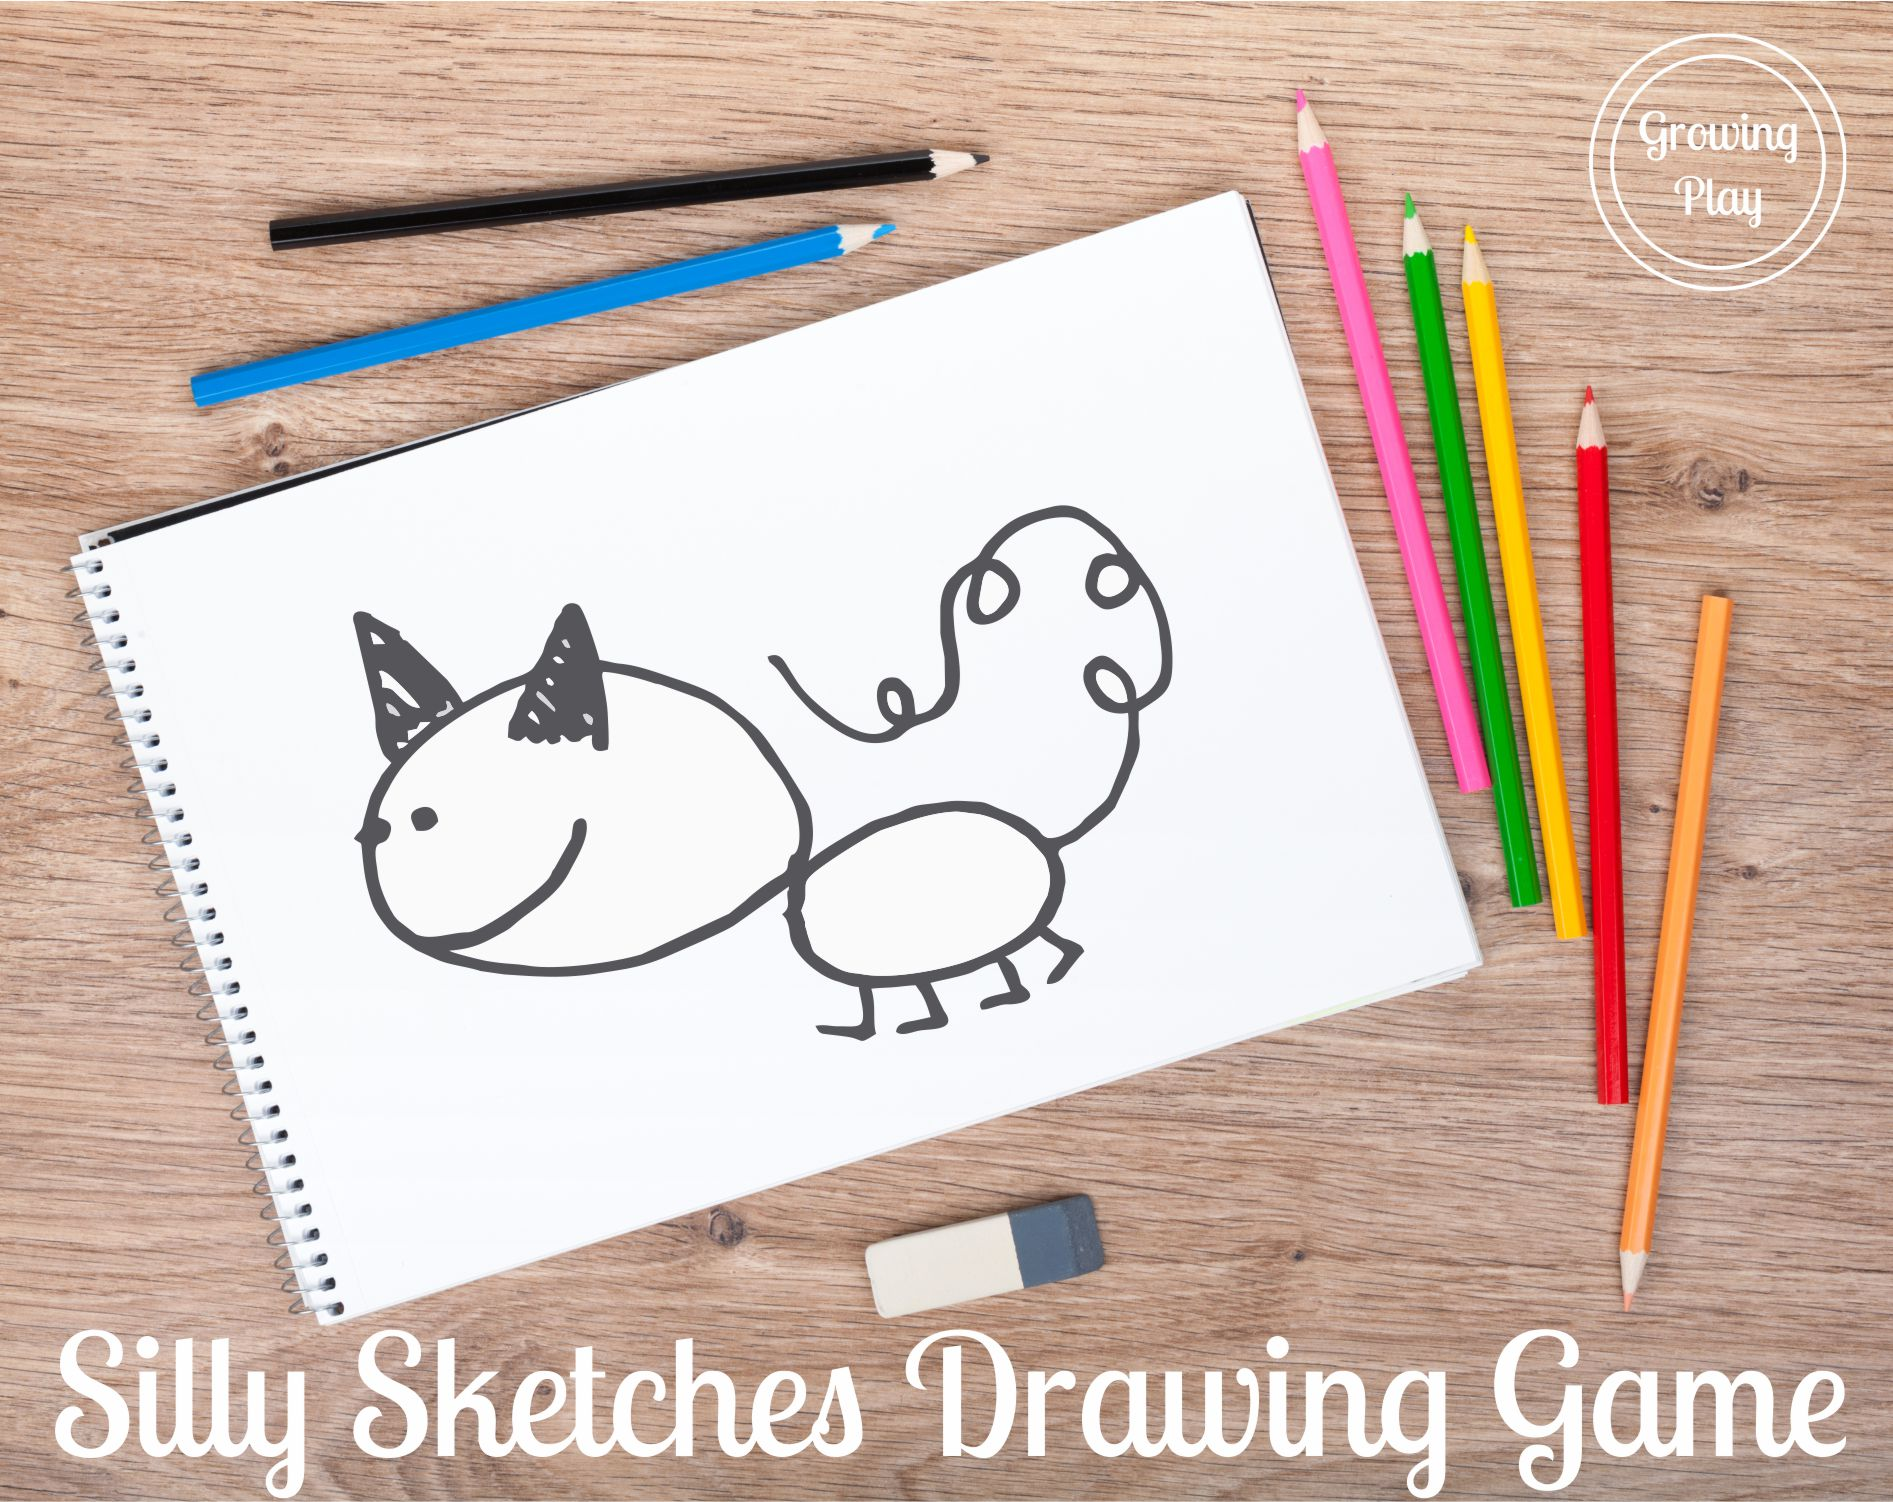 Silly Sketches Pencil and Paper Drawing Game